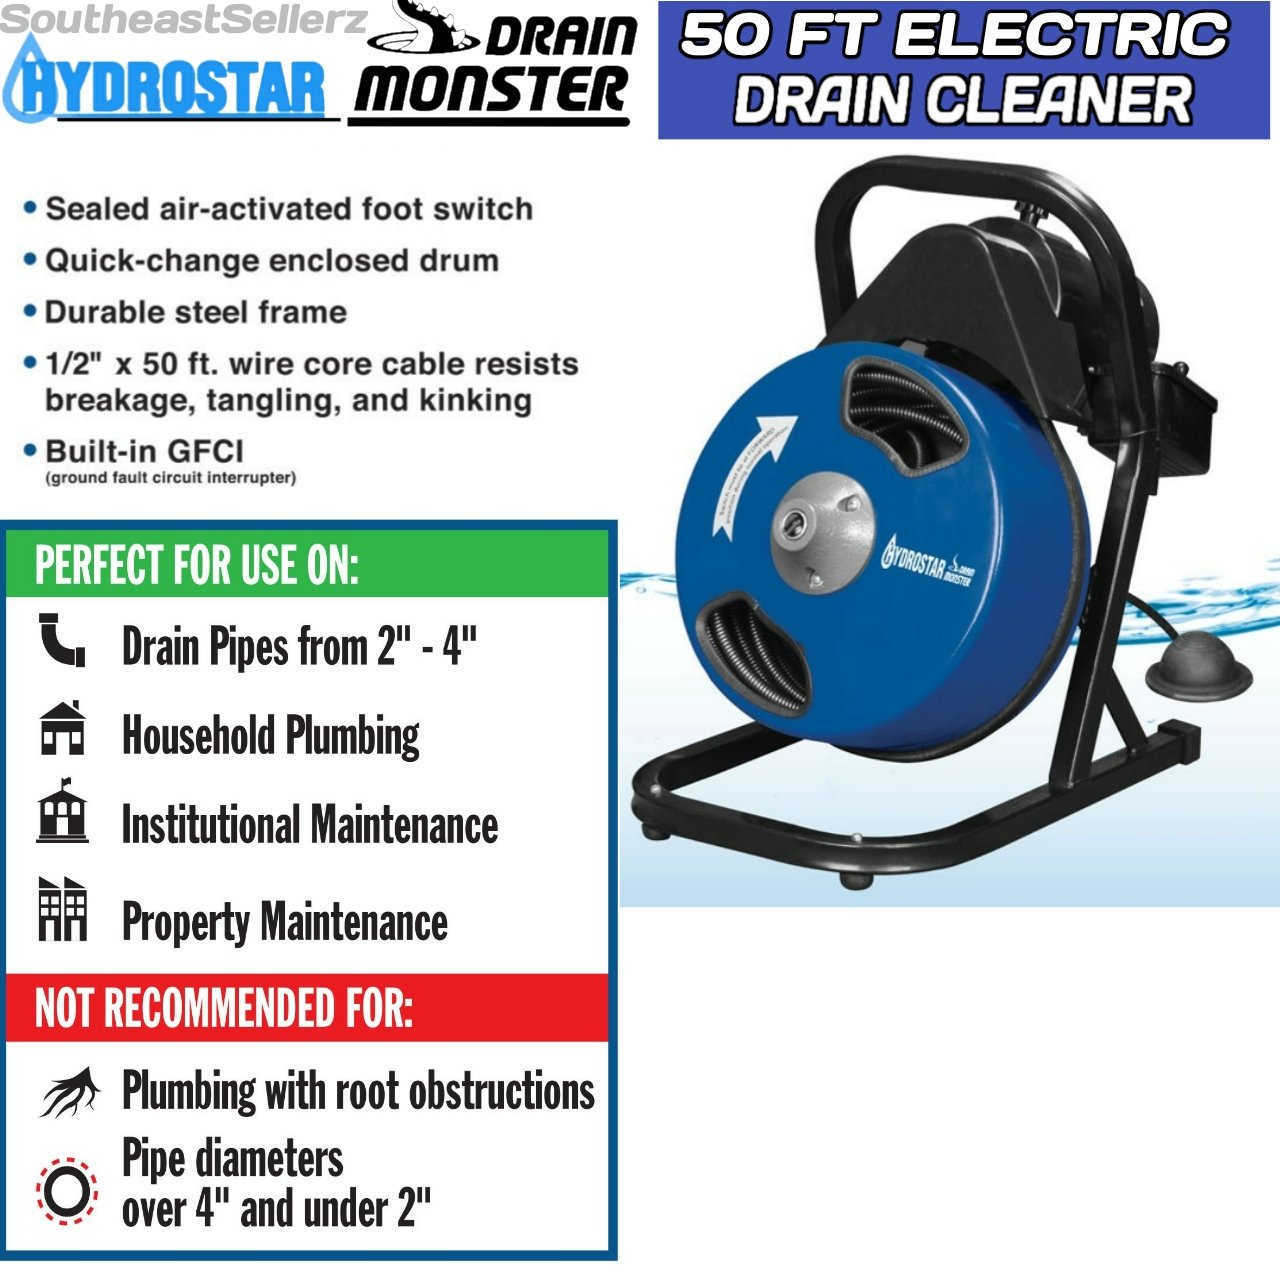 1 2 Inch By 50 Feet Compact Electric Drain Cleaner Drum Auger Snake Dont Know If All Switches Are The Same Maybe They To 4 Pipes With Built In Gfci And Many Accessories